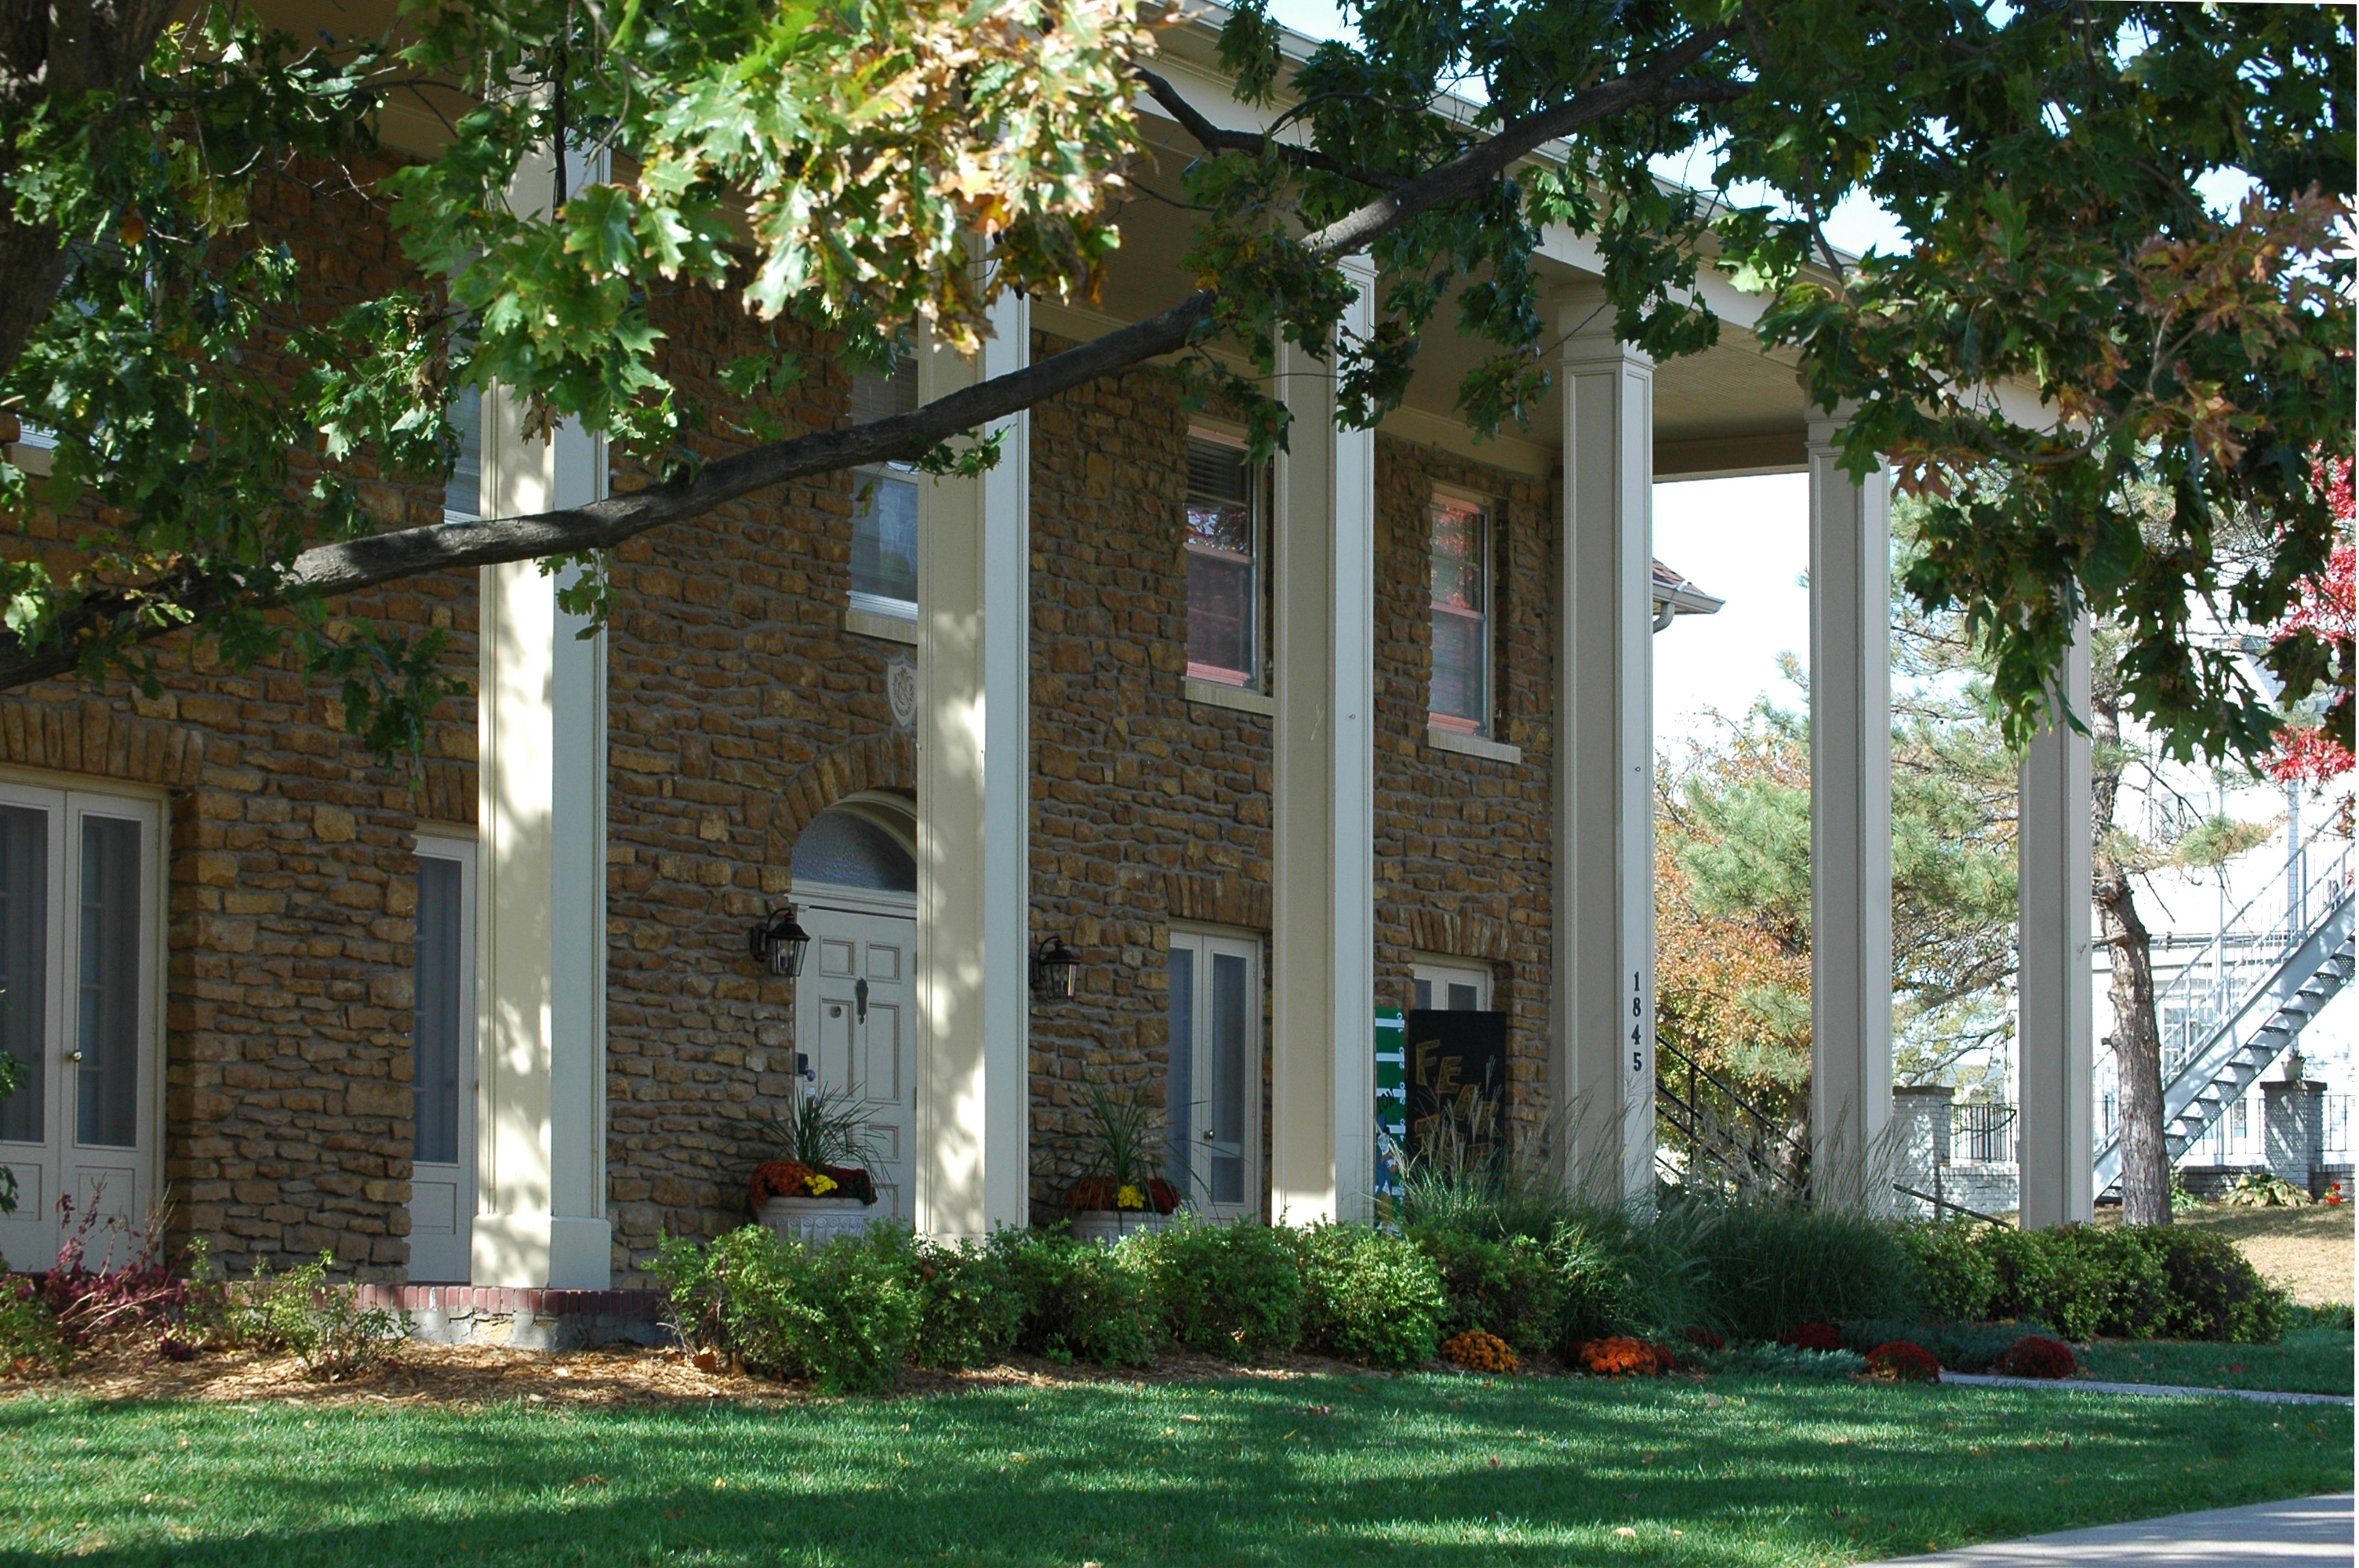 Zeta Tau Alpha House